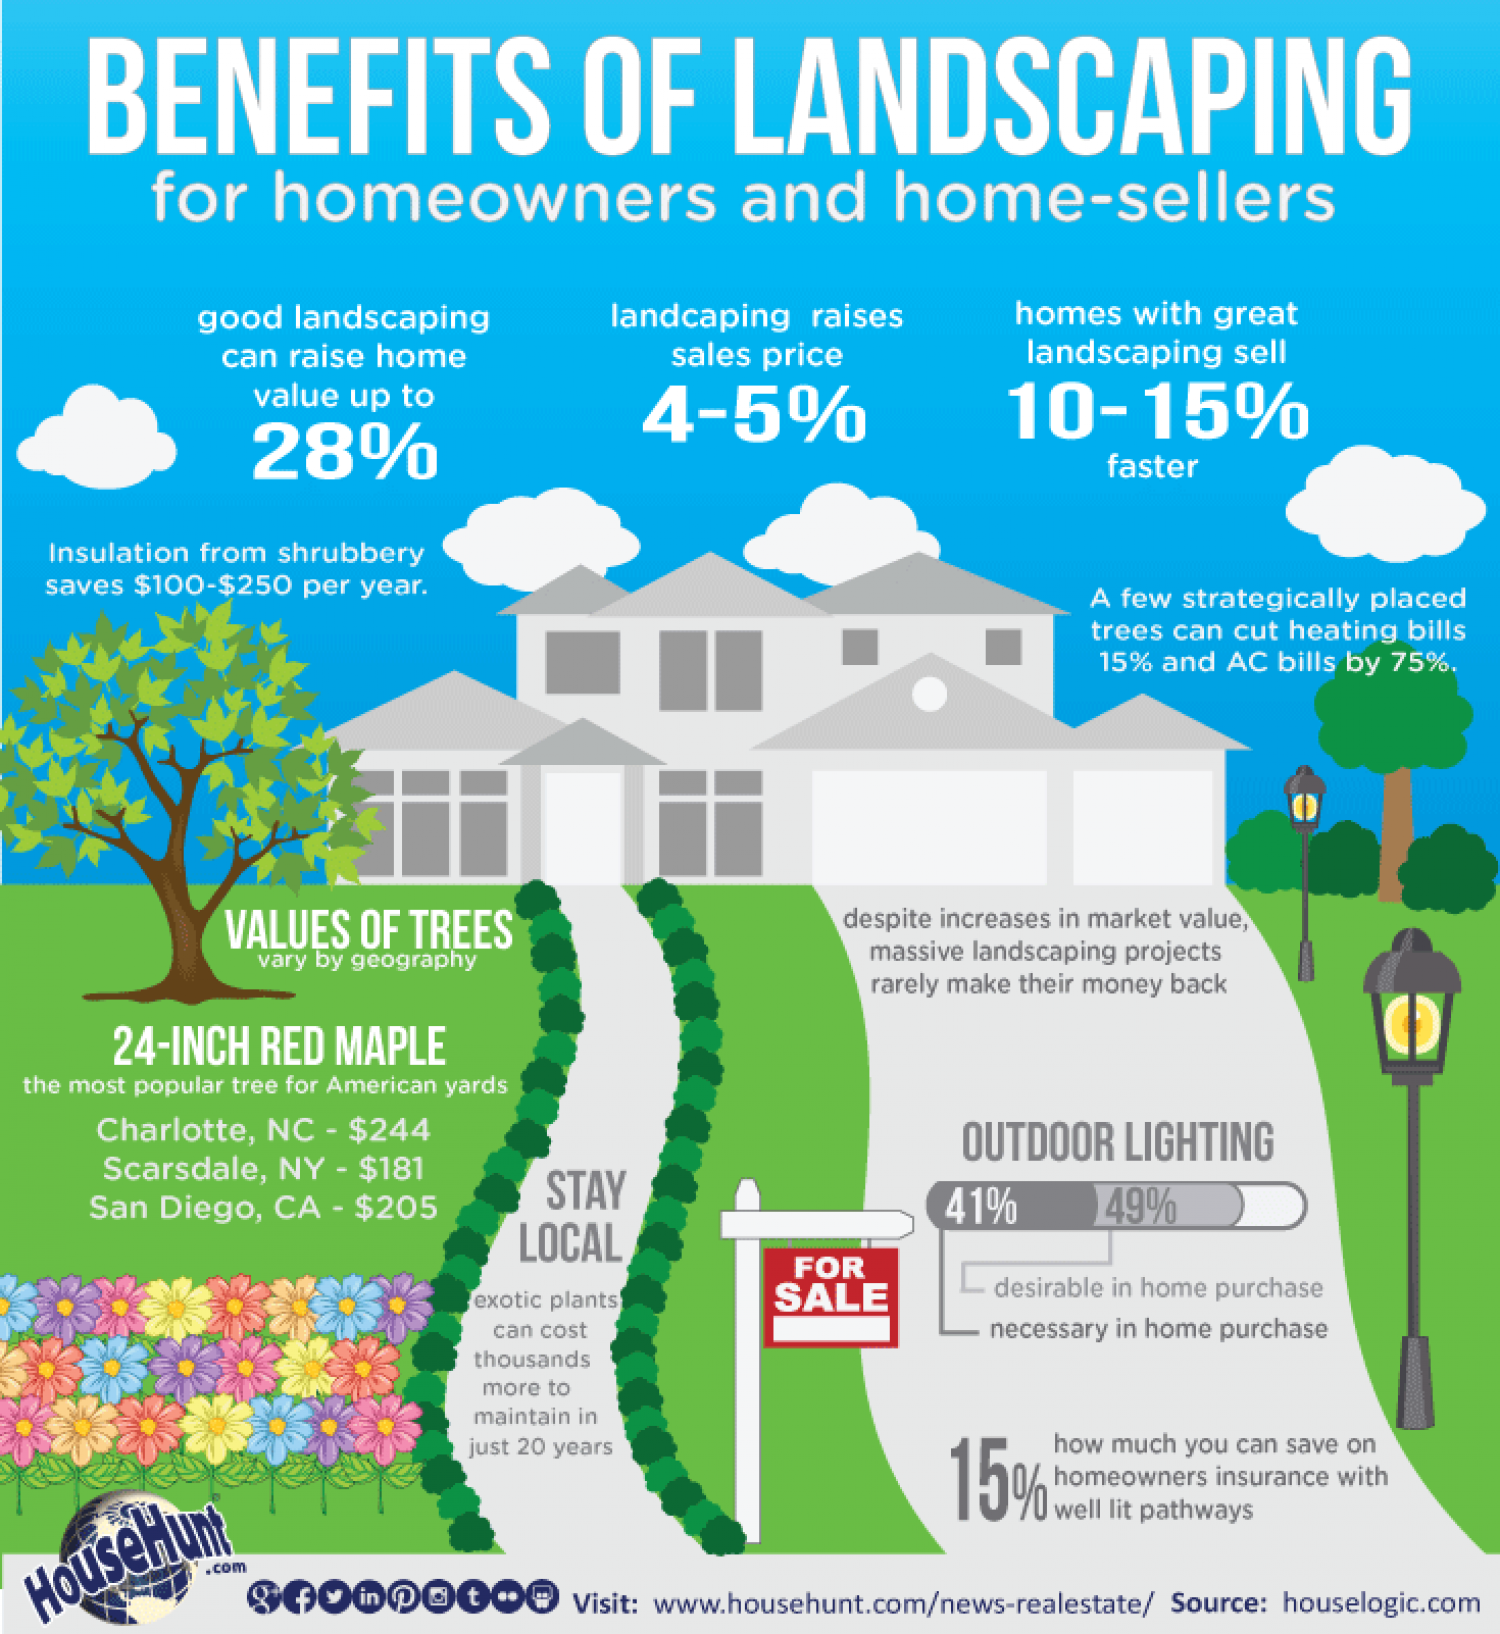 Benefits of Landscaping: For Homeowners and Homesellers Infographic